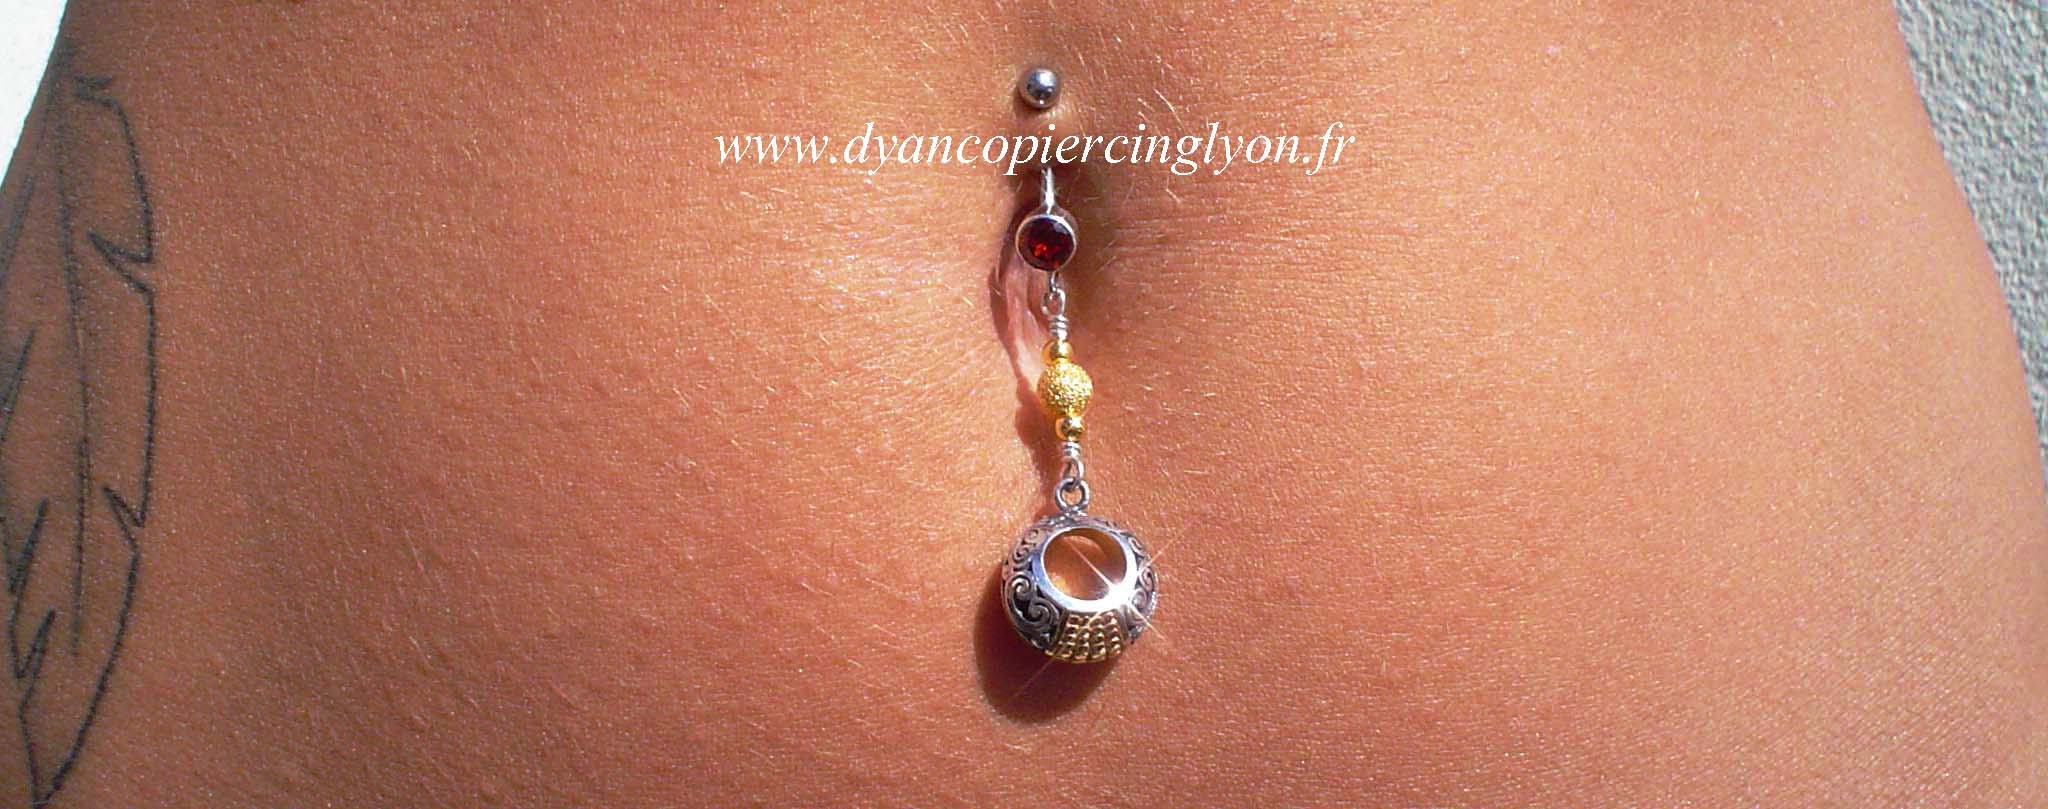 Dangle GOLD N SILVER Bali Belly